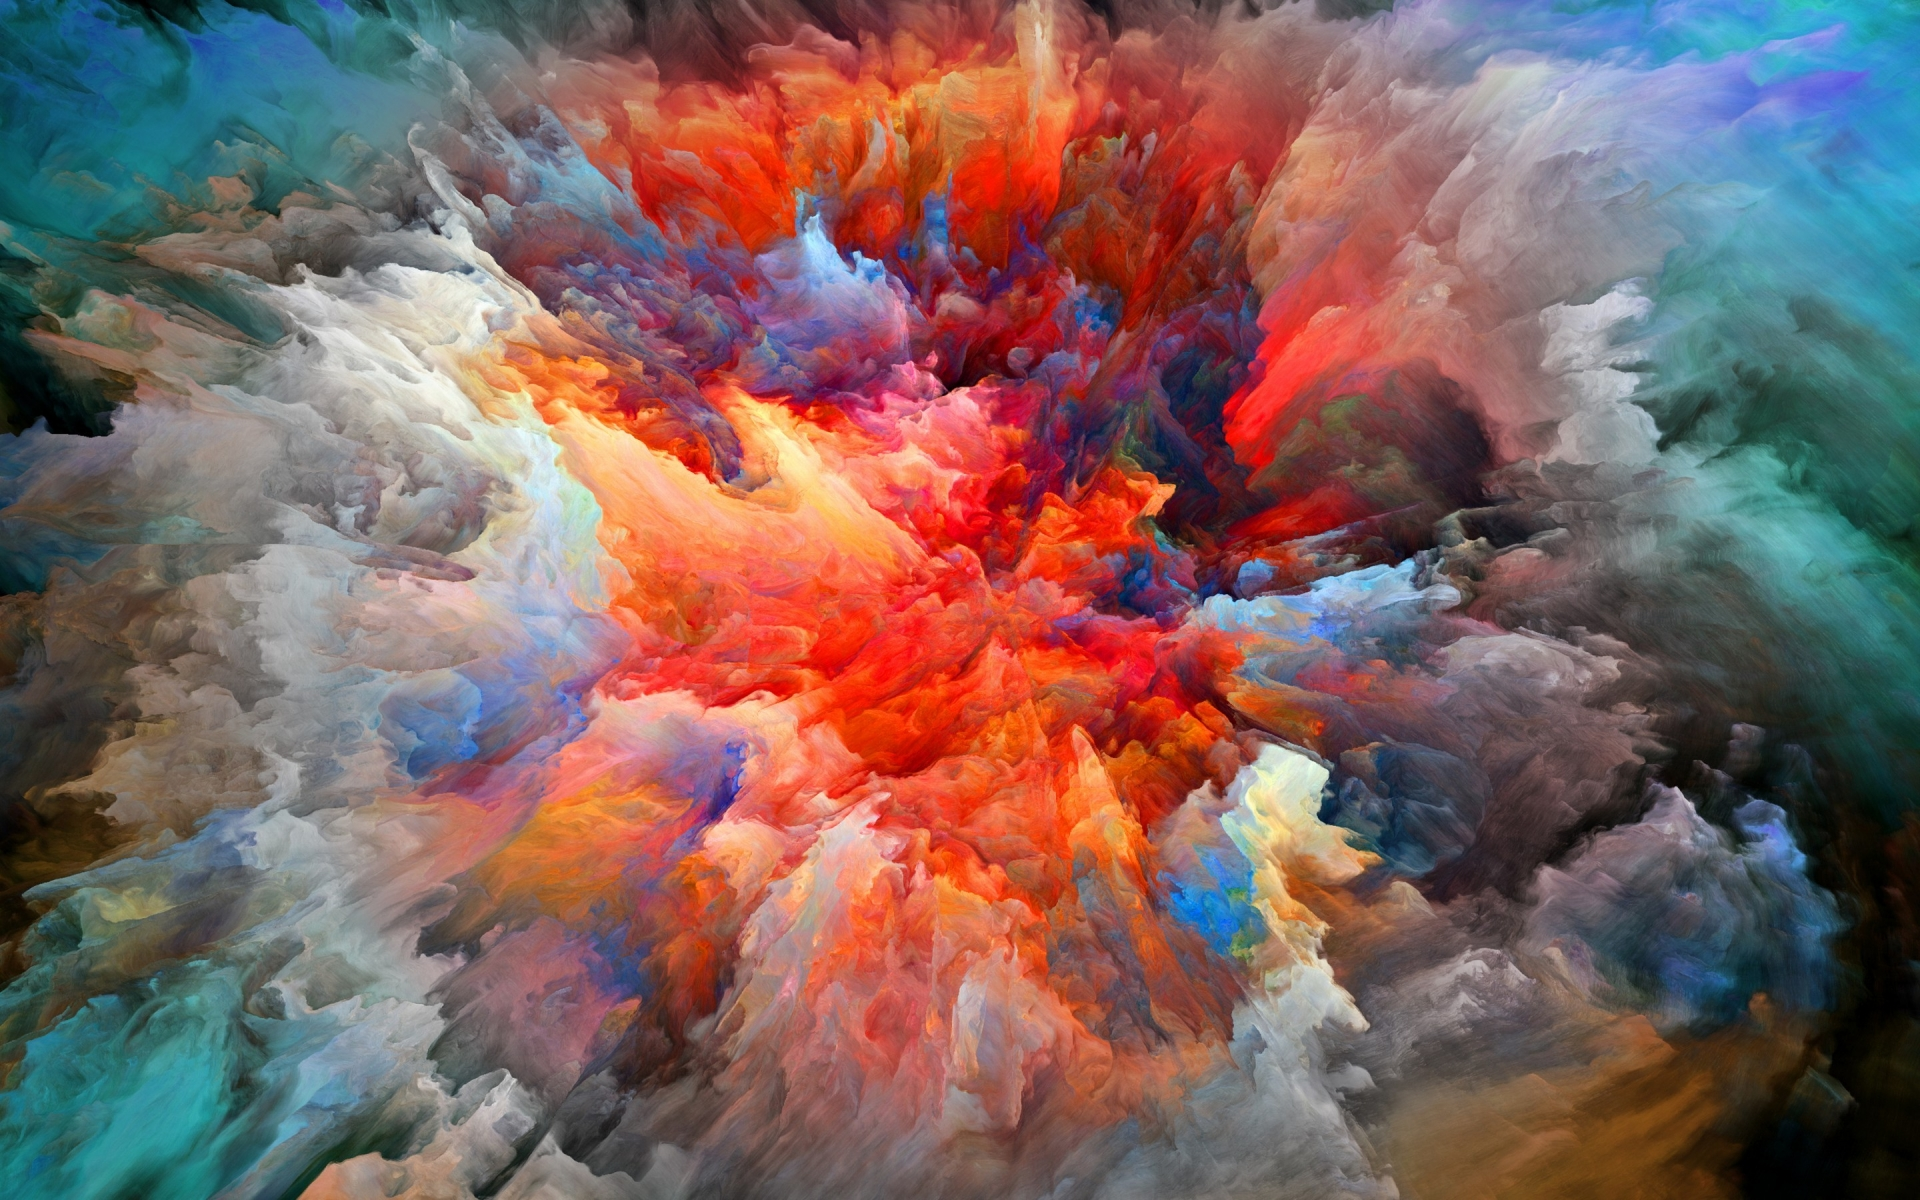 Explosion of Colors for 1920 x 1200 widescreen resolution